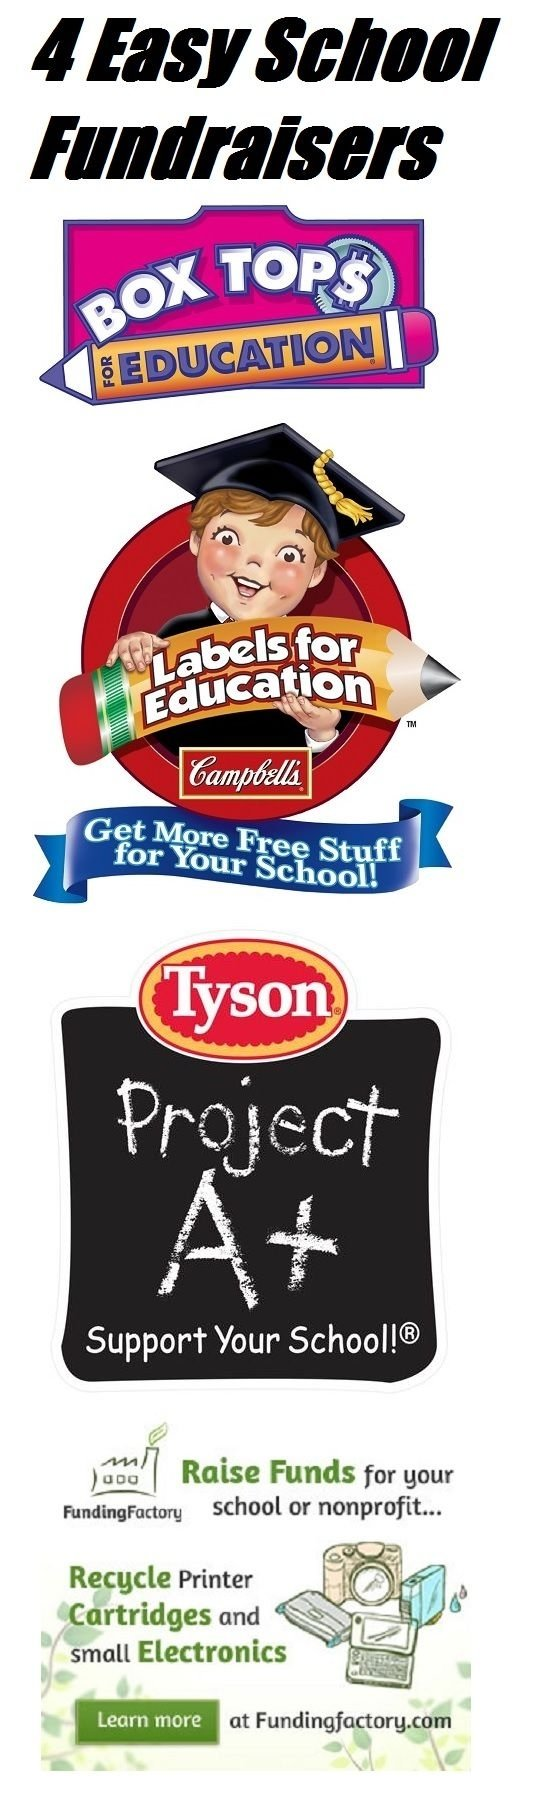 10 Awesome Easy Fundraising Ideas For High School 169 best school fundraising ideas images on pinterest school 9 2020